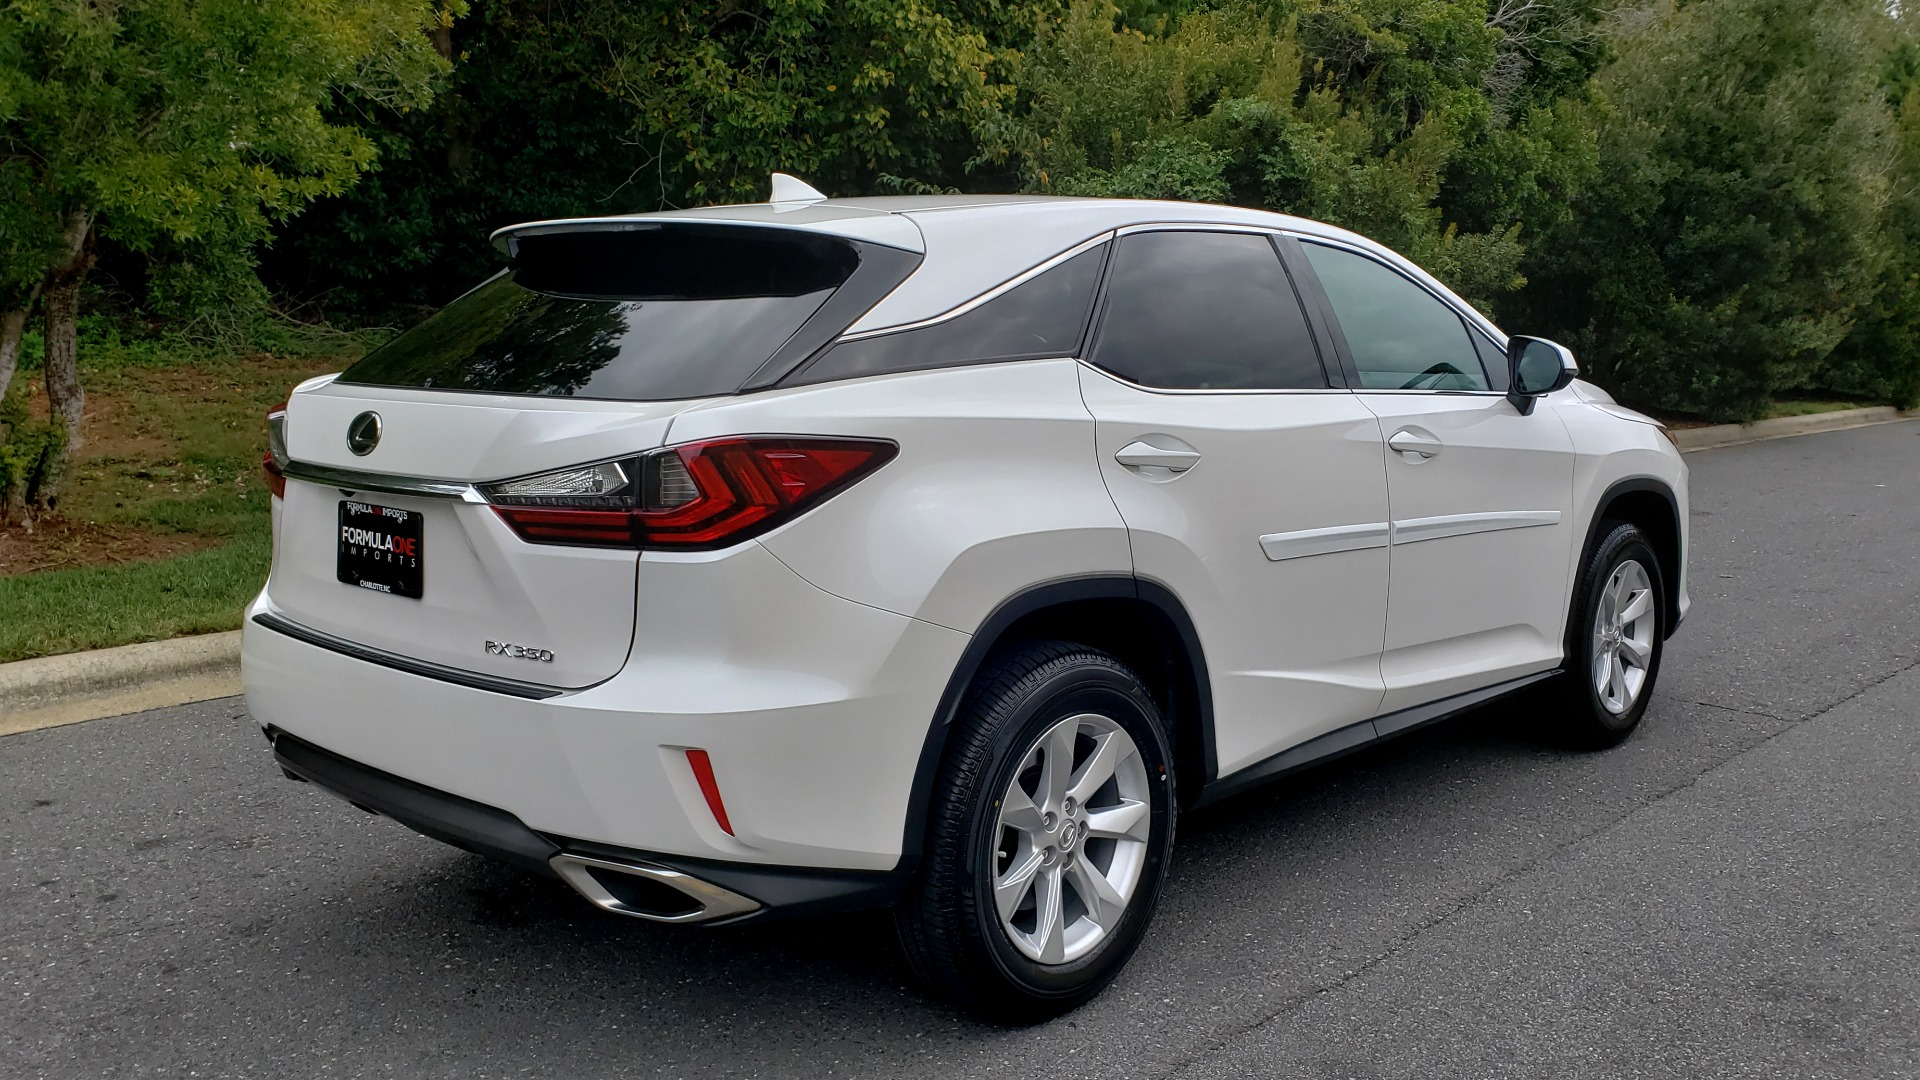 Used 2016 Lexus RX 350 FWD / 4-DR / 3.5L V6 / 8-SPD AUTO / LEATHER / REARVIEW for sale $31,995 at Formula Imports in Charlotte NC 28227 3